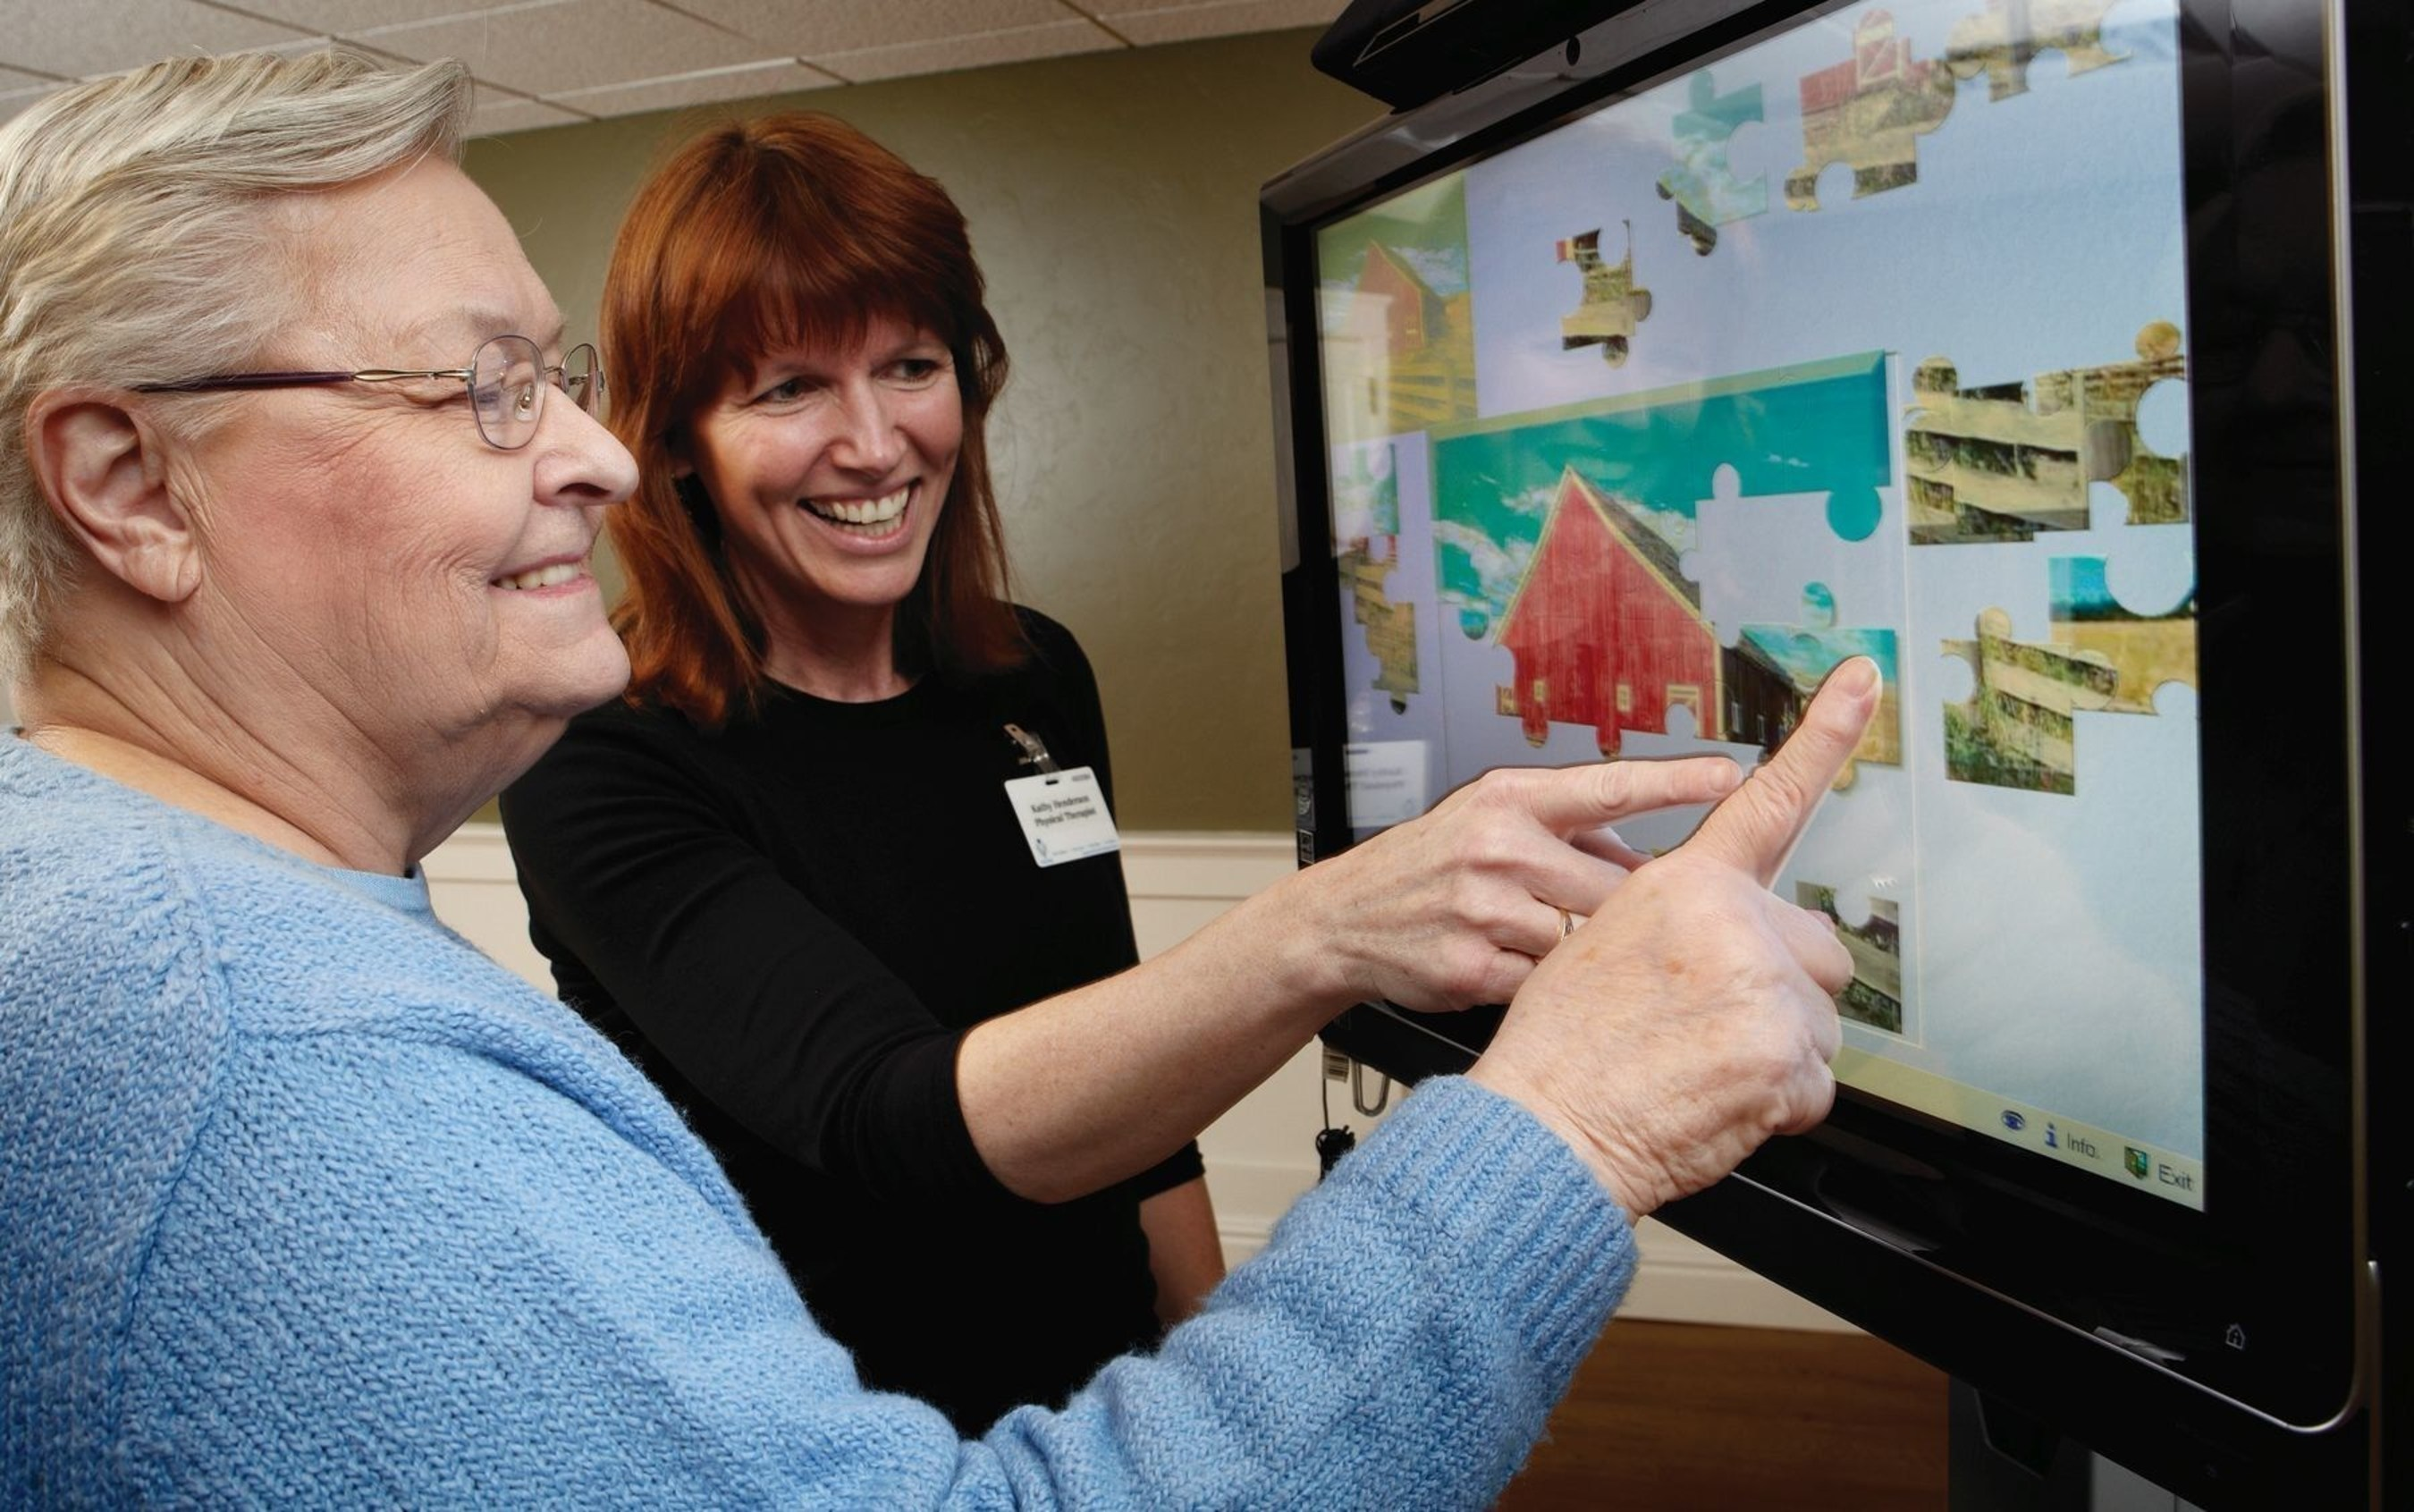 A caregiver uses iN2L technology to foster interaction with a resident. Research shows this technology can revive engagement and strengthen connections with family members.